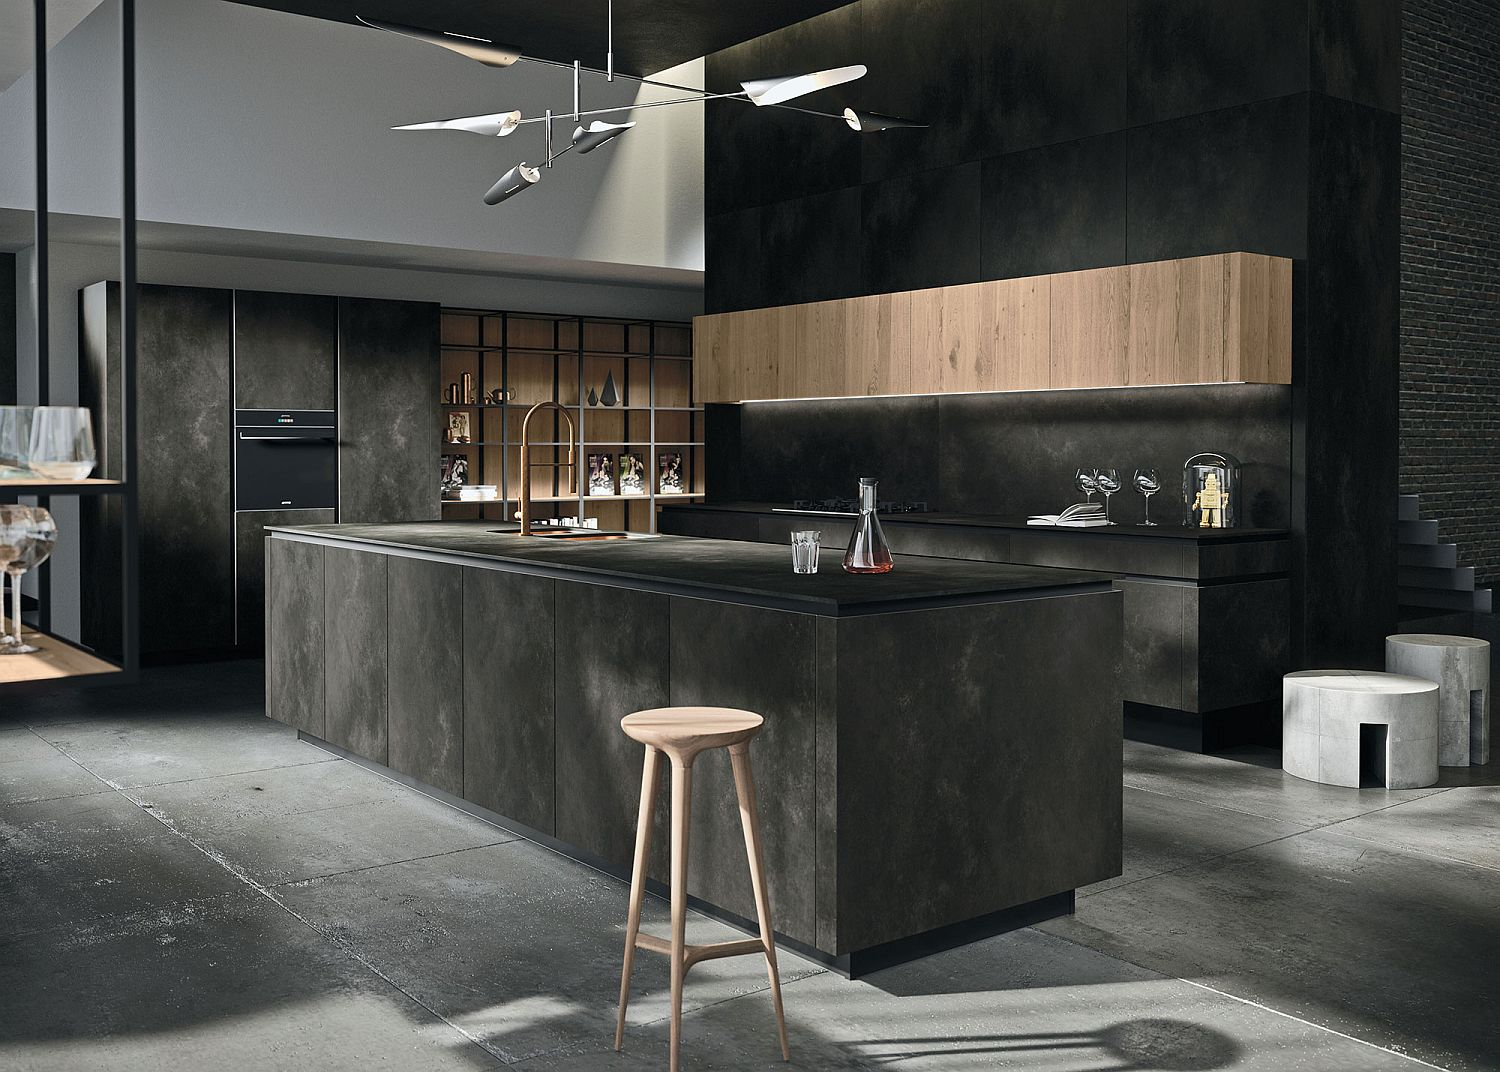 Dark-shades-in-the-kitchen-along-with-textural-beauty-with-smart-shelving